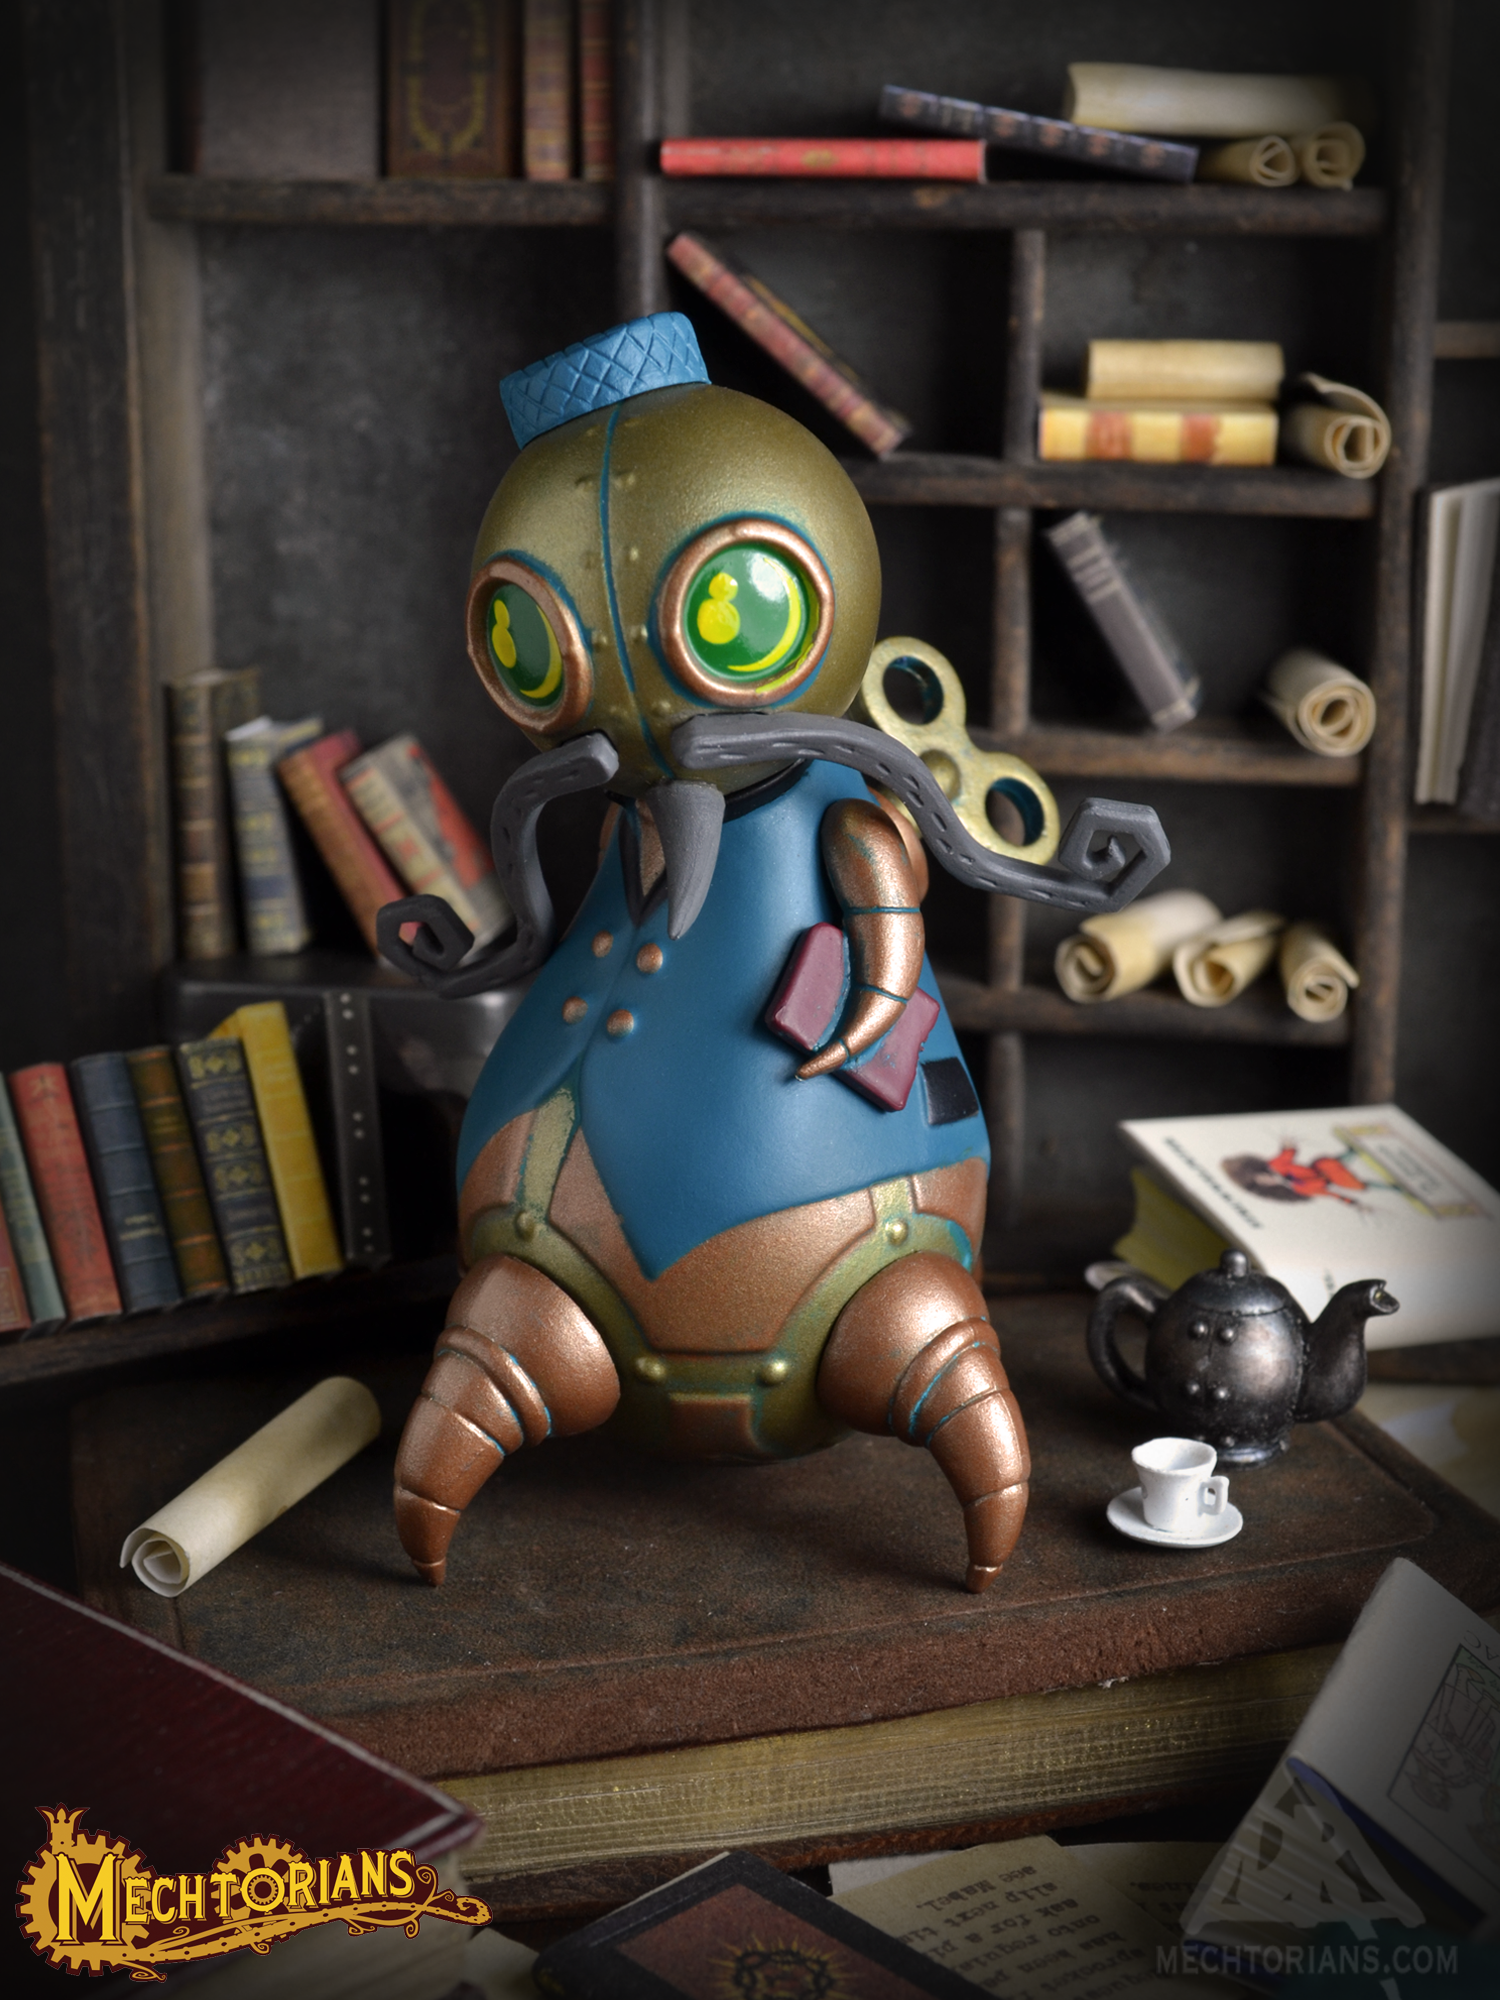 Doktor A's Mini Mechtorians vinyl figure Series 2 with Kidrobot. Clawfoot Librarian